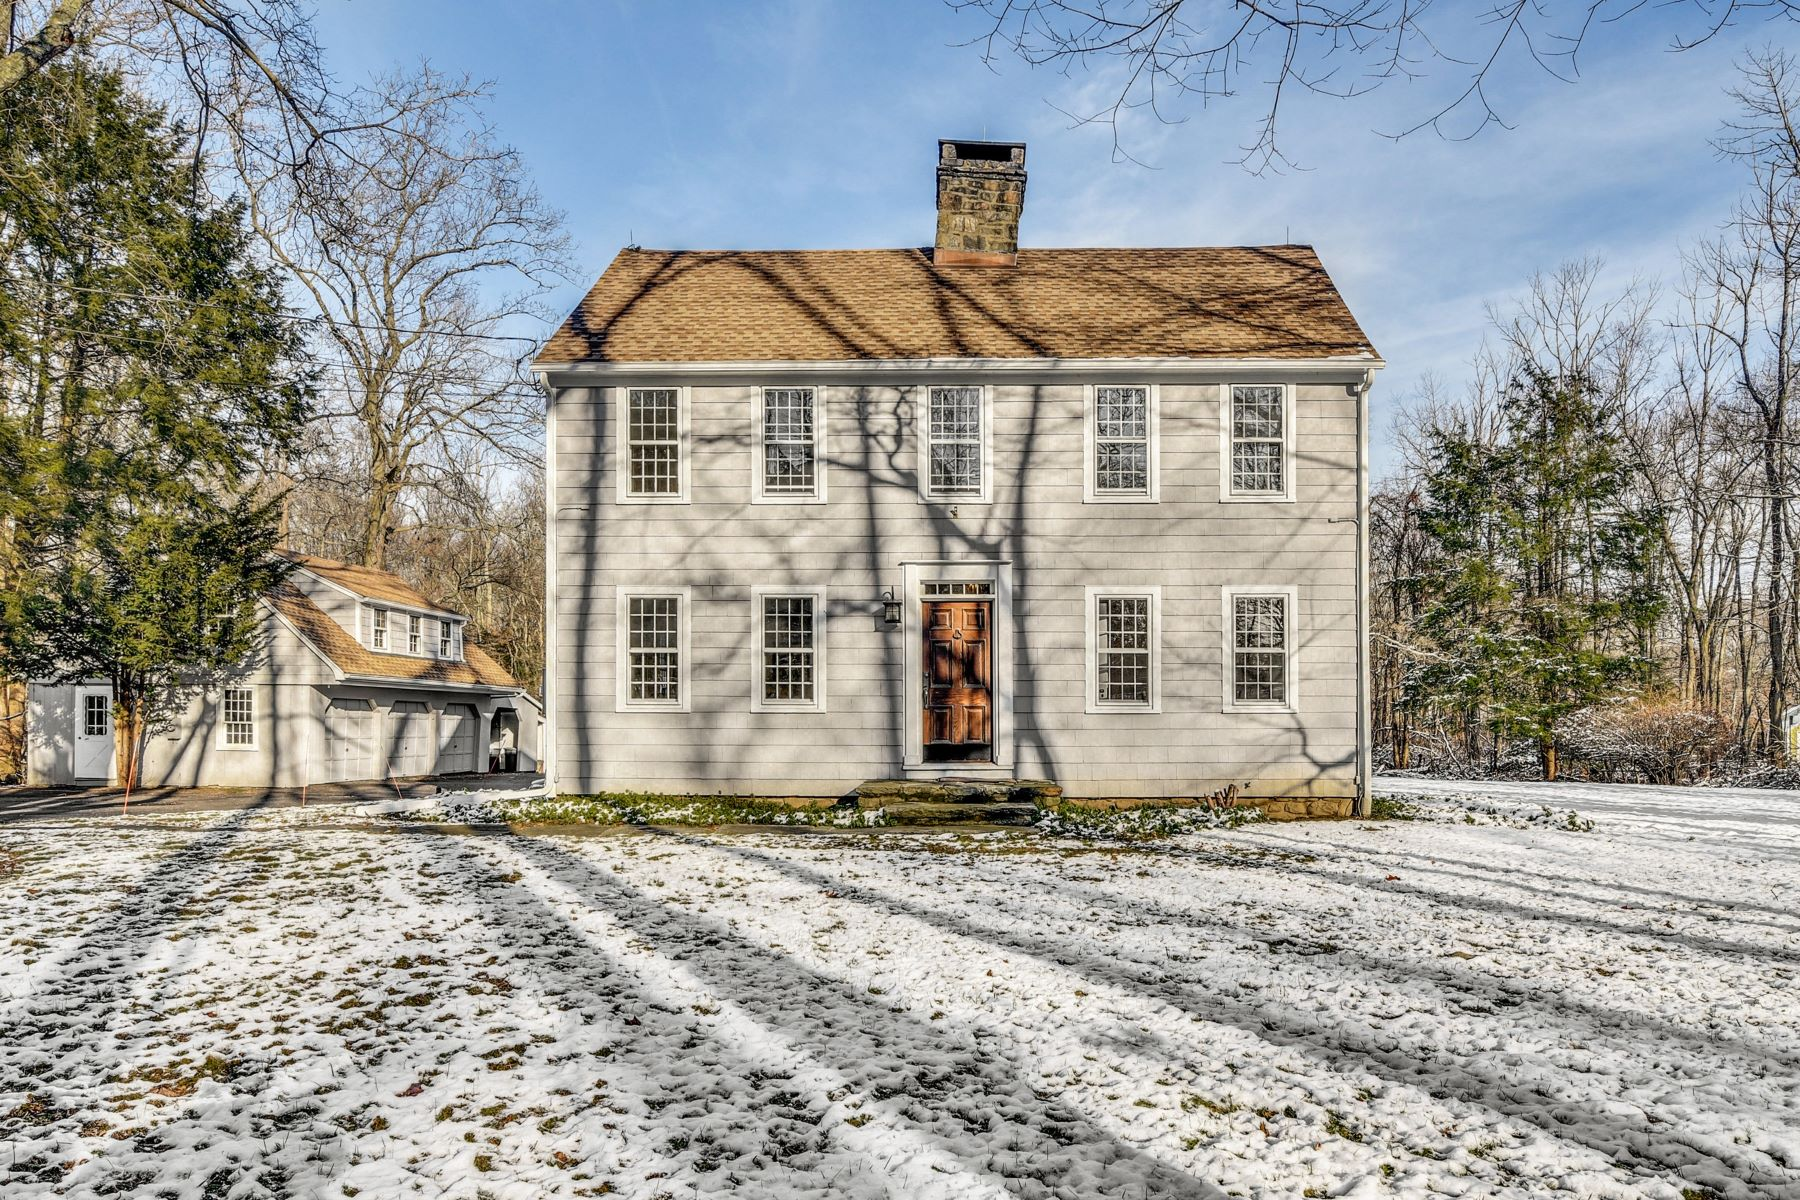 Single Family Homes for Sale at Gorgeous & Updated Classic New England Colonial 119 Weston Road, Weston, Connecticut 06883 United States